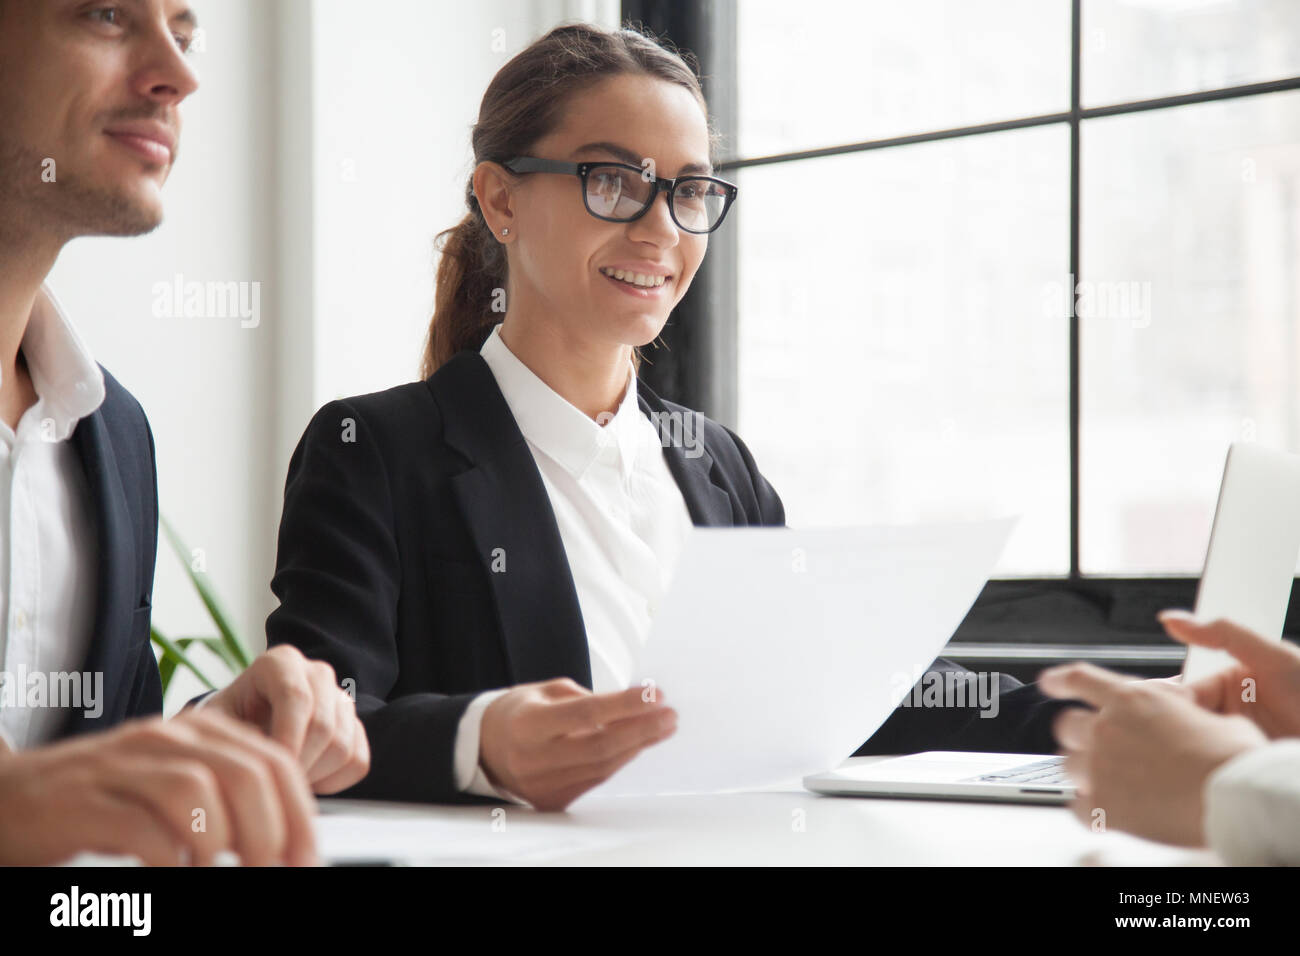 HR representatives listening to applicant thoughts - Stock Image